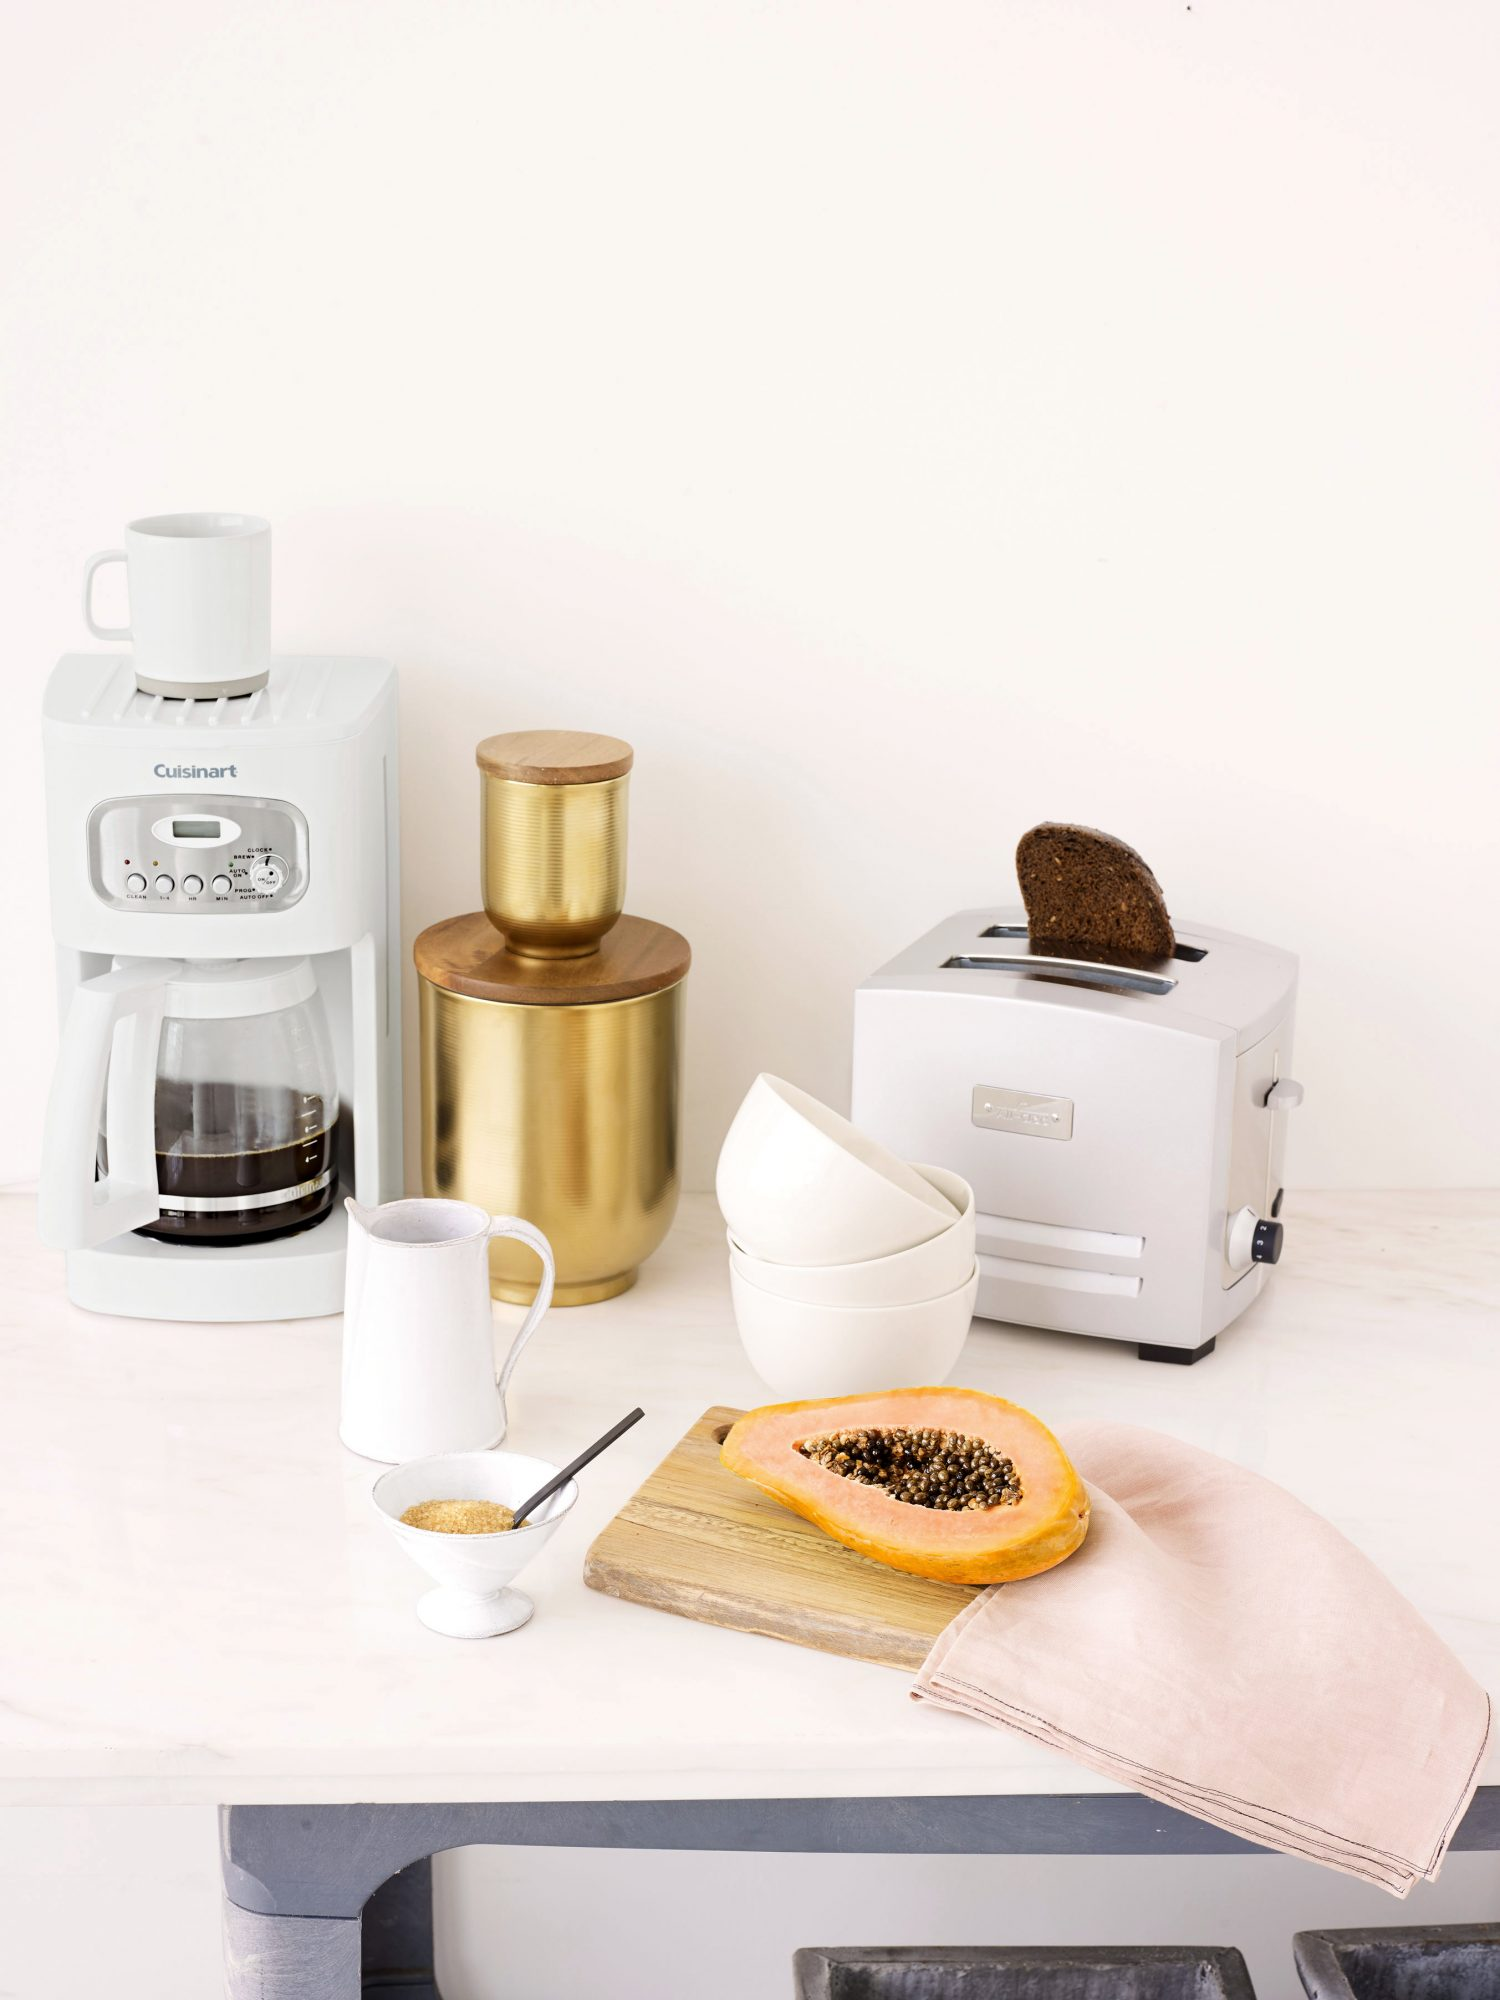 breakfast registry items